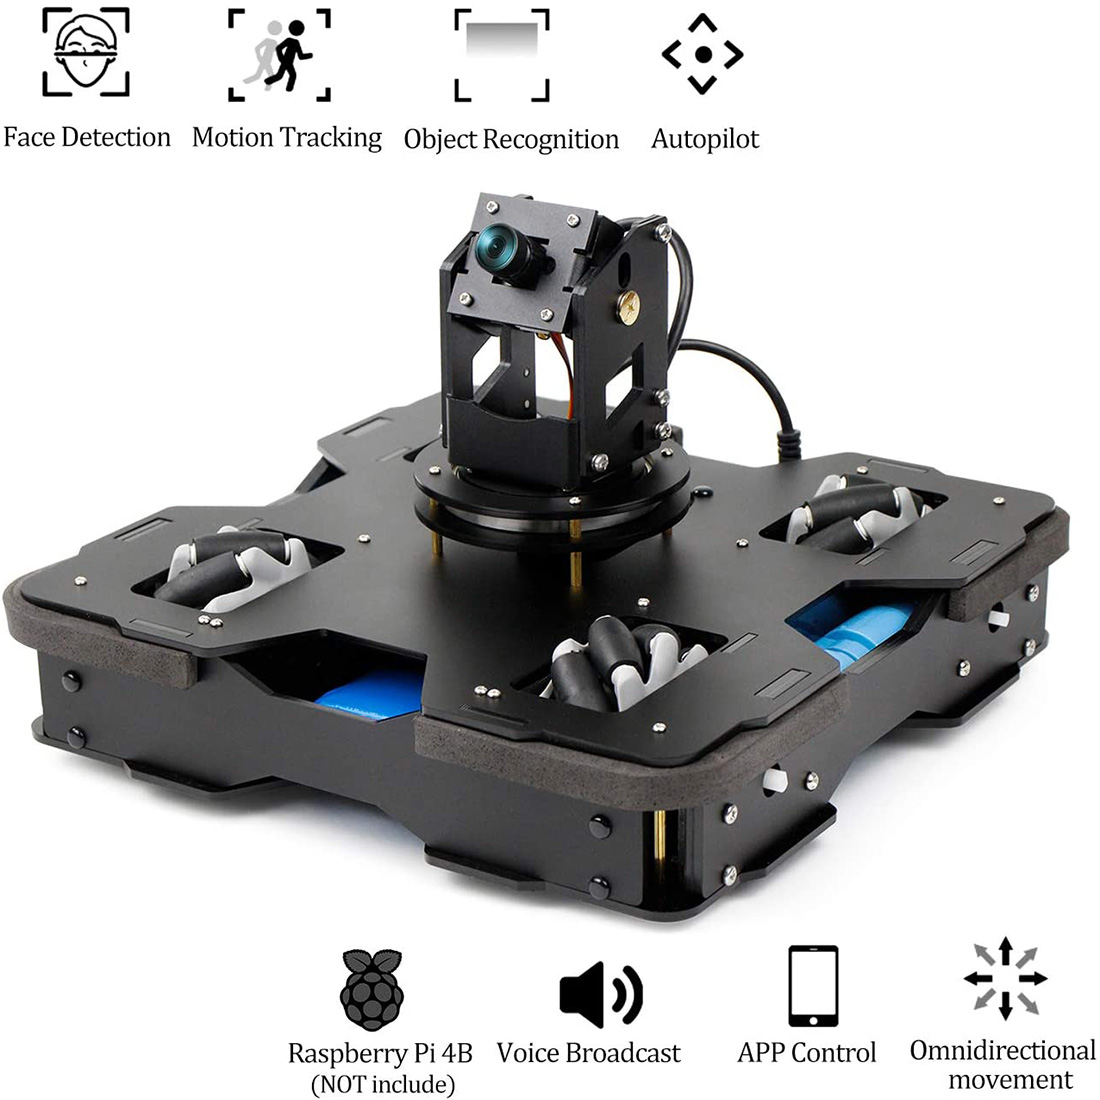 AI Smart Programmable DIY Robot Car Kit Wifi Video For Raspberry Pi 4B/2G Or 4B/4G High Tech Toy Gift For Over 10 (With Board)